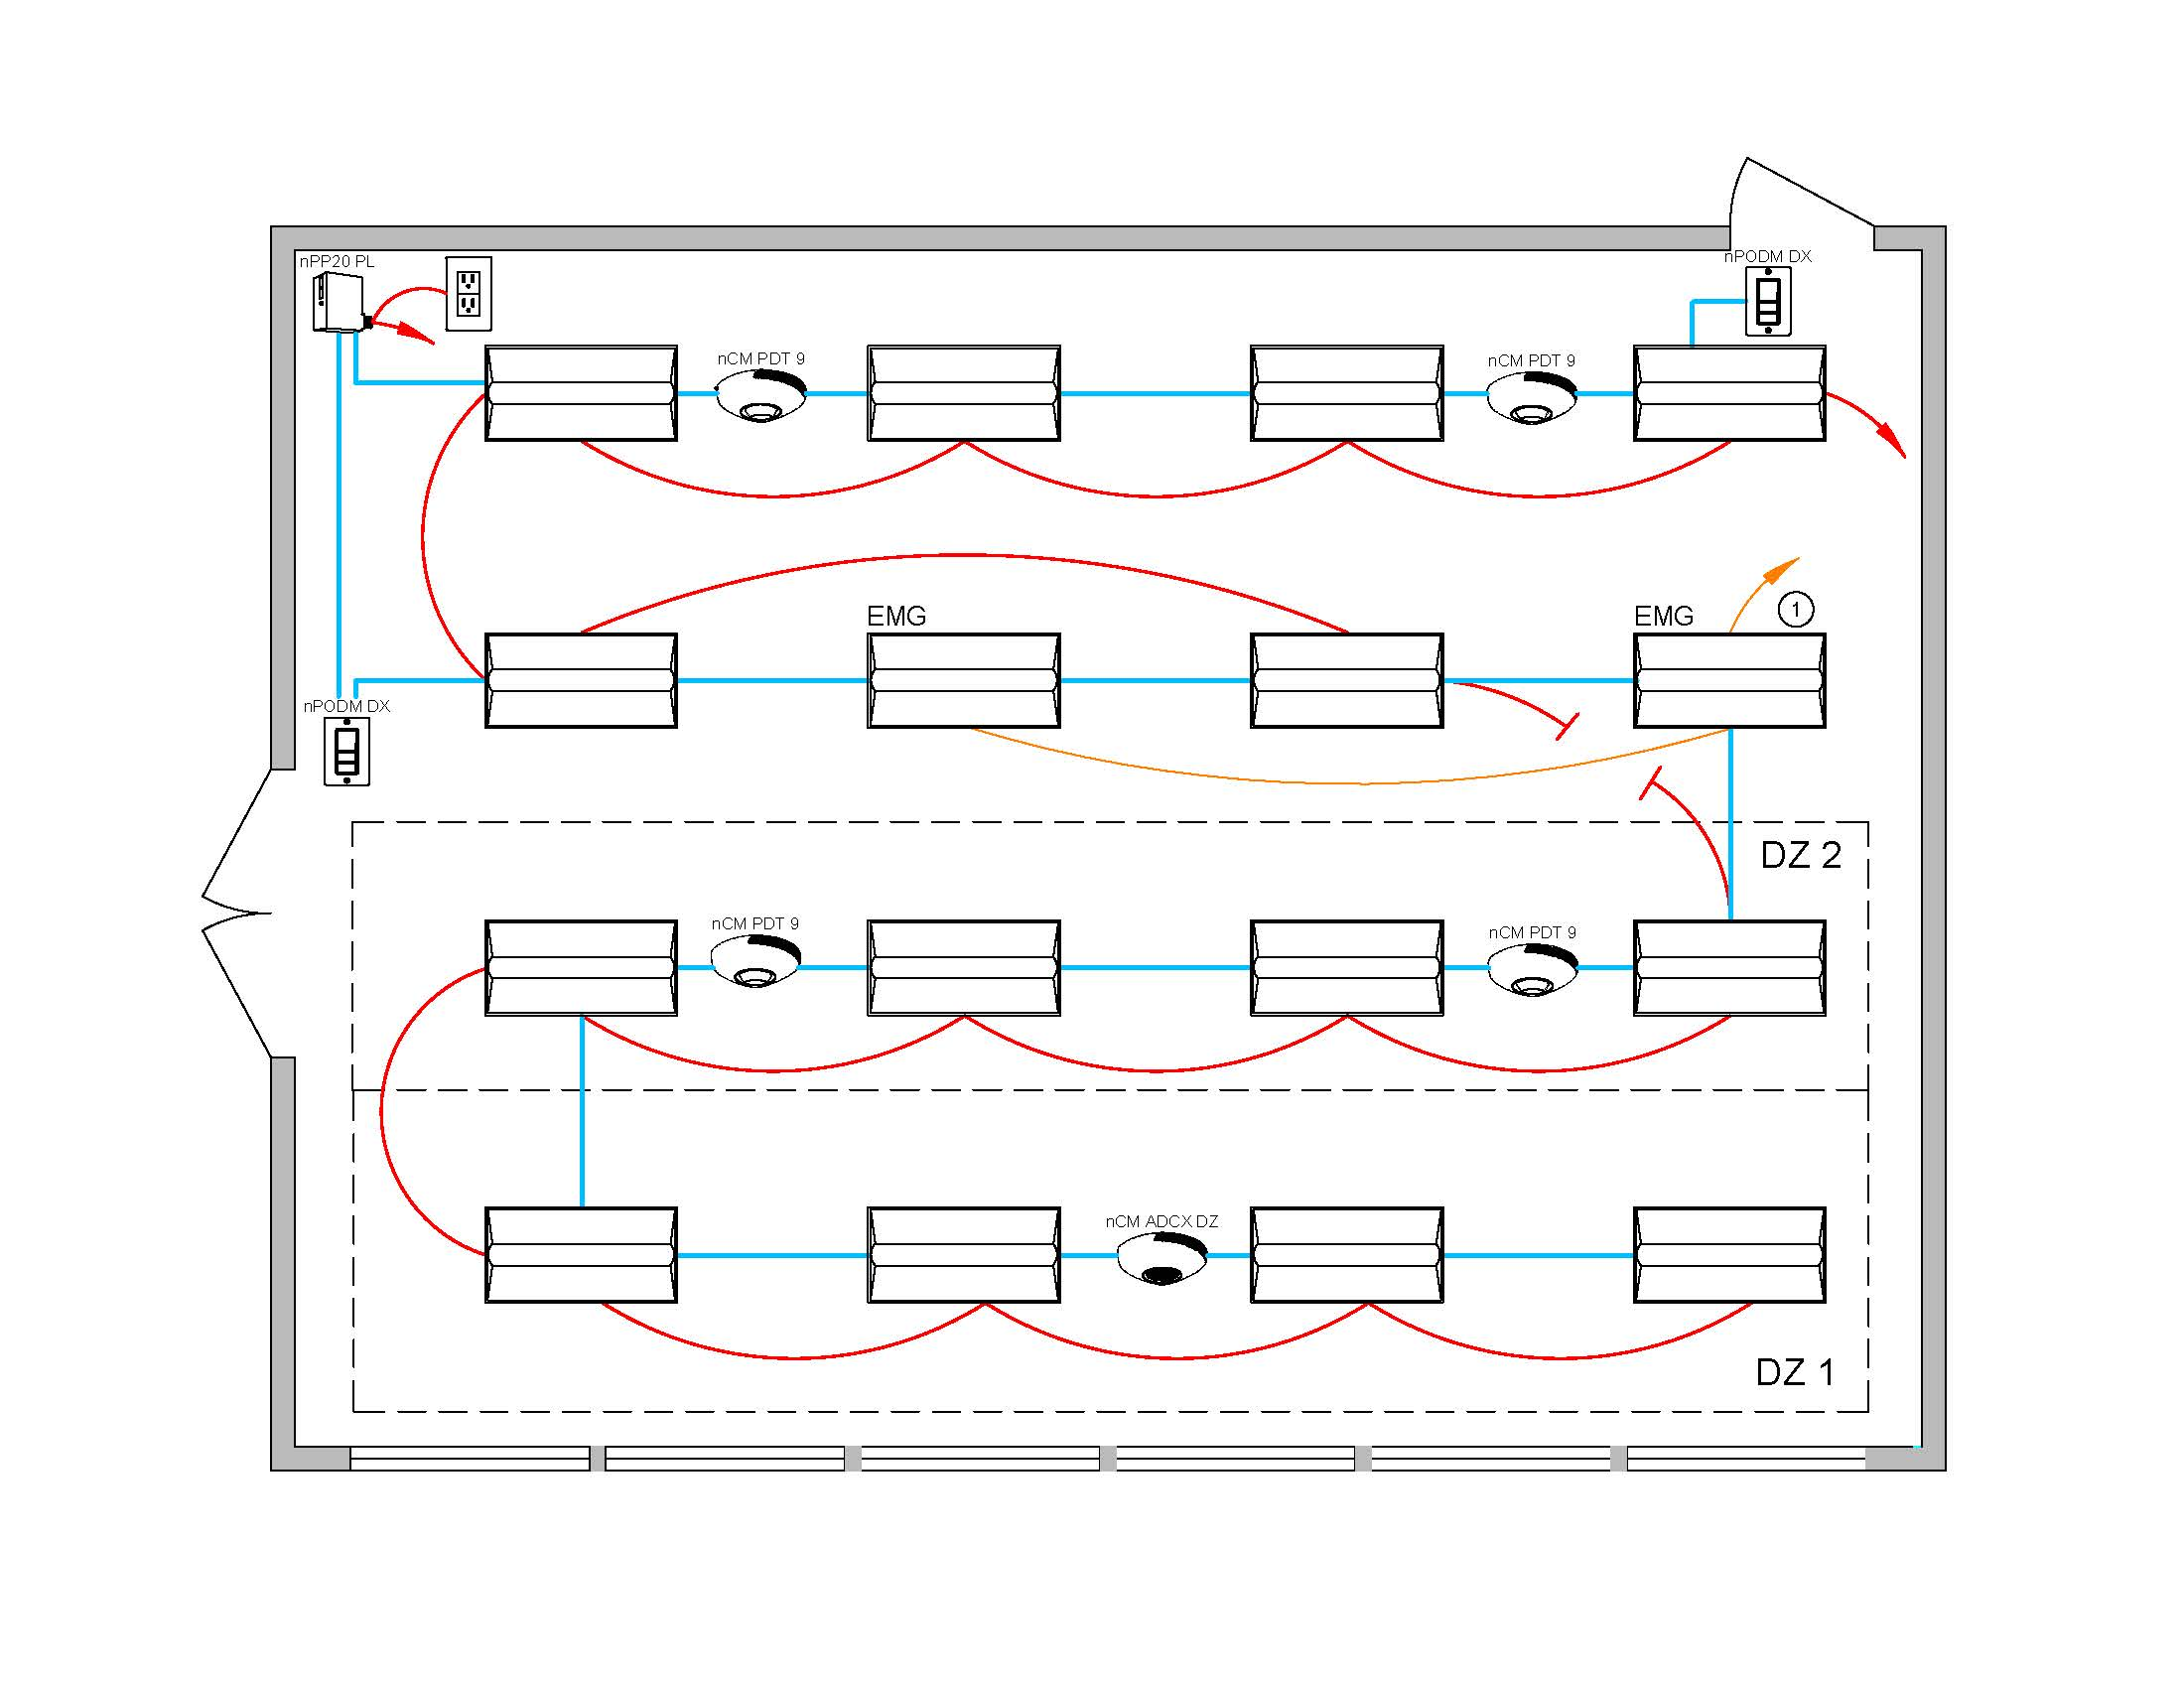 Nlight Wiring Diagram - wiring diagram oline for everyone on